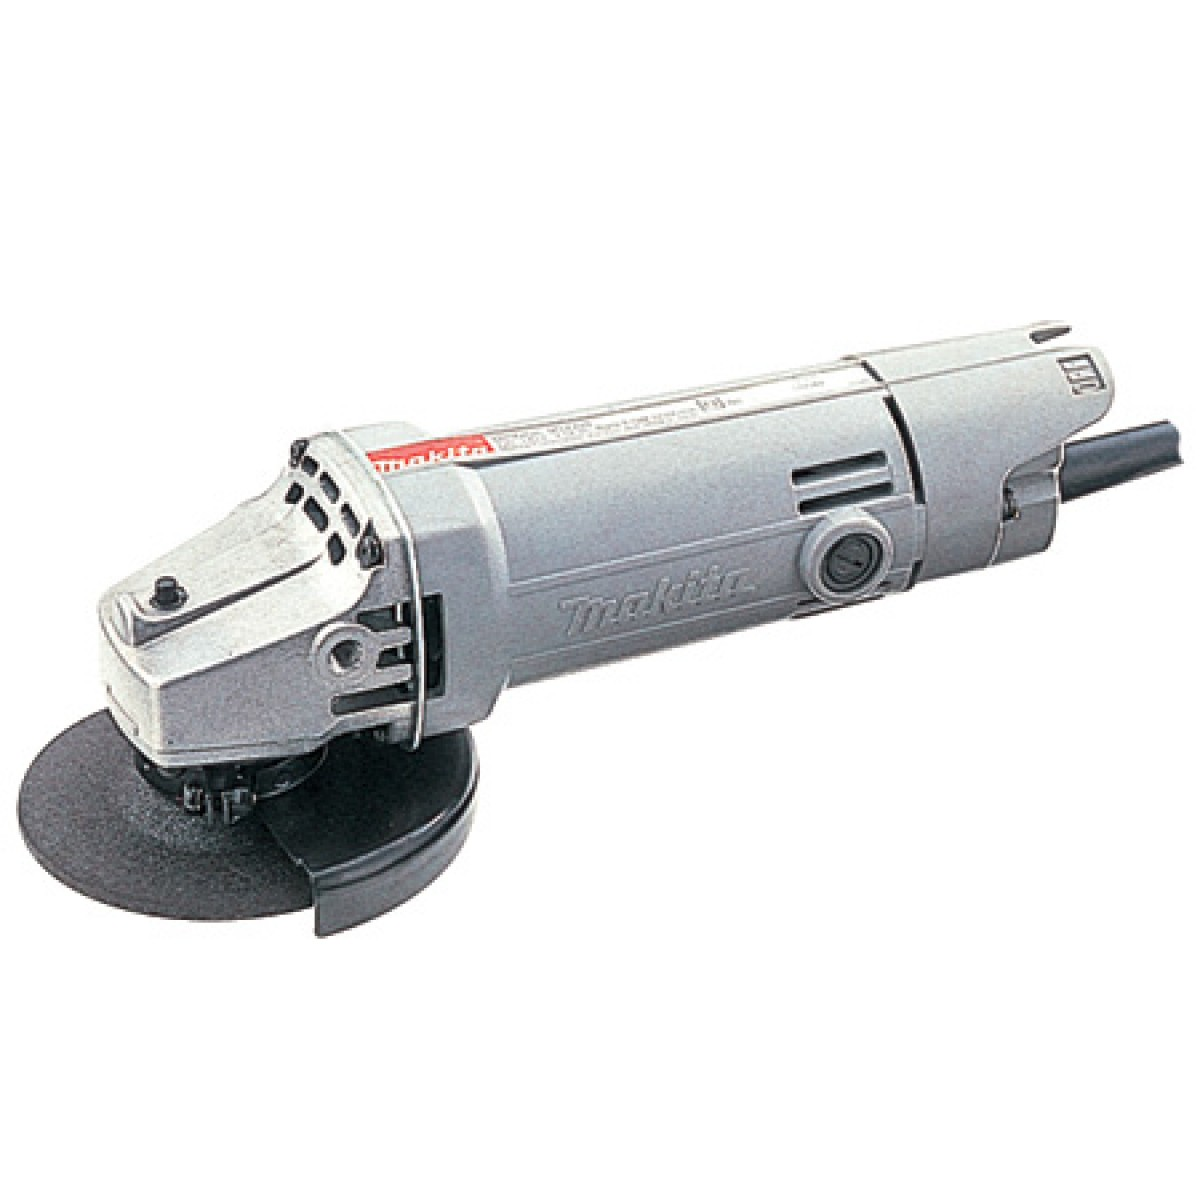 Makita Disc Grinder 9500nb Double Insulation